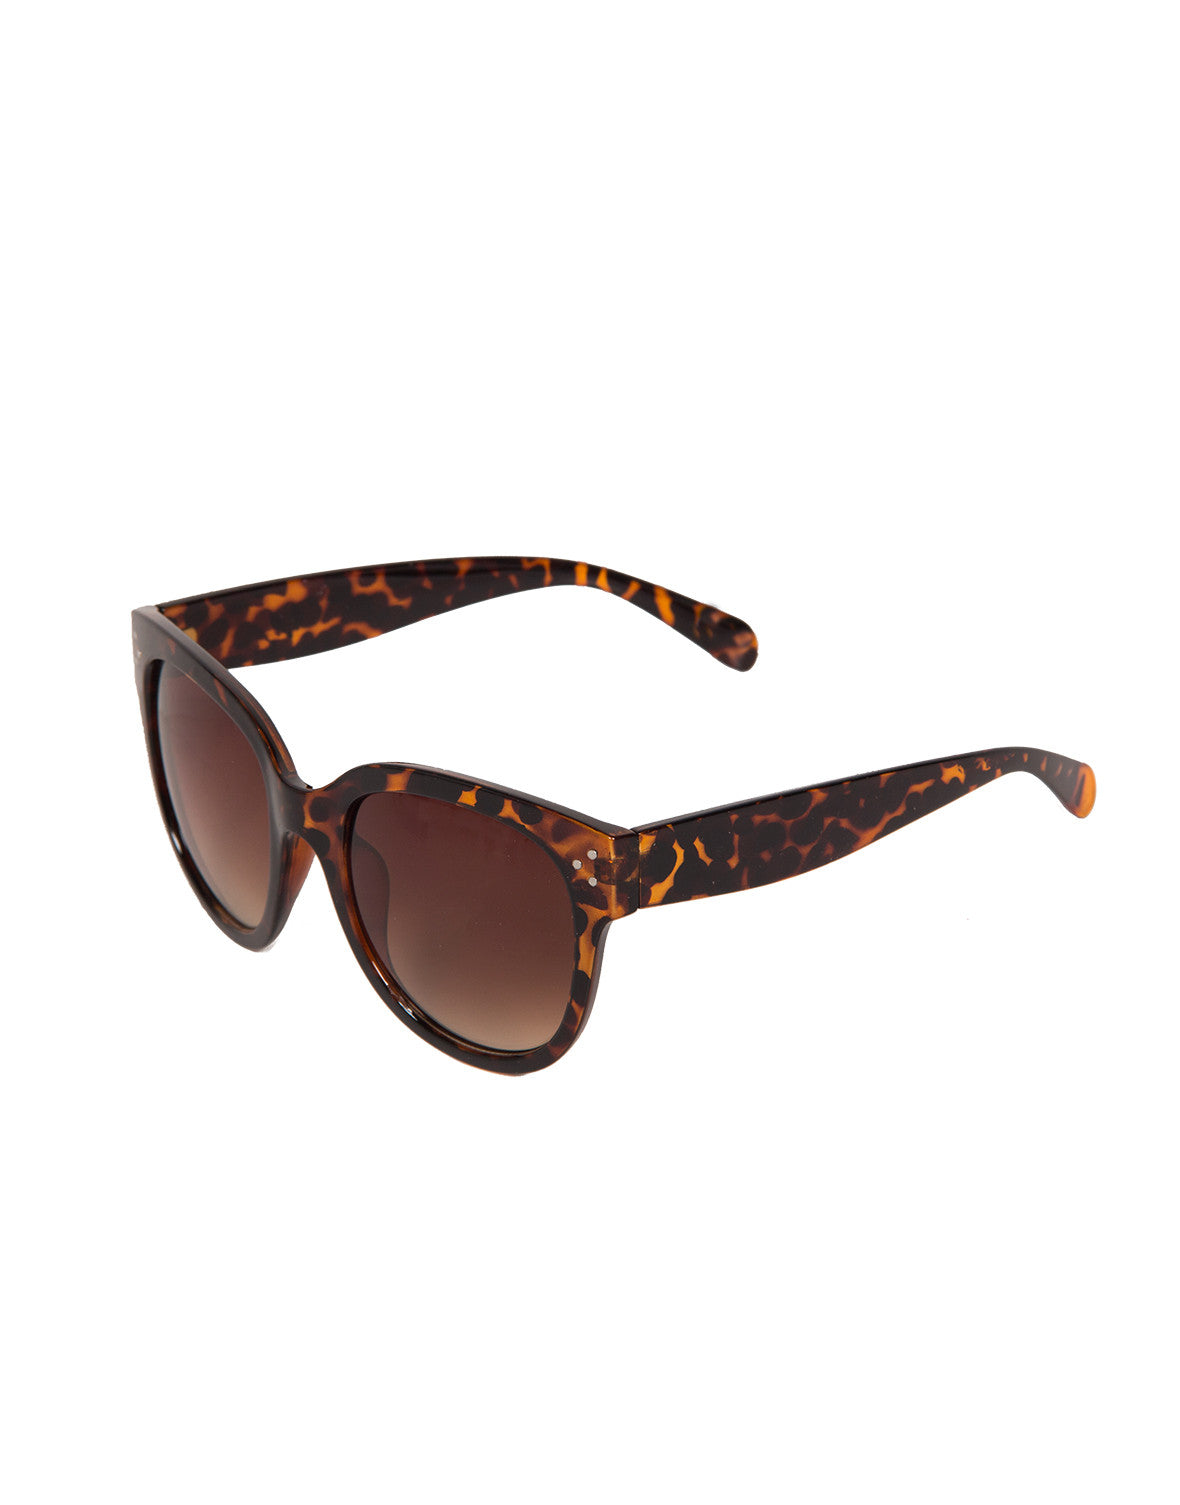 Triple Dotted Oversized Sunglasses